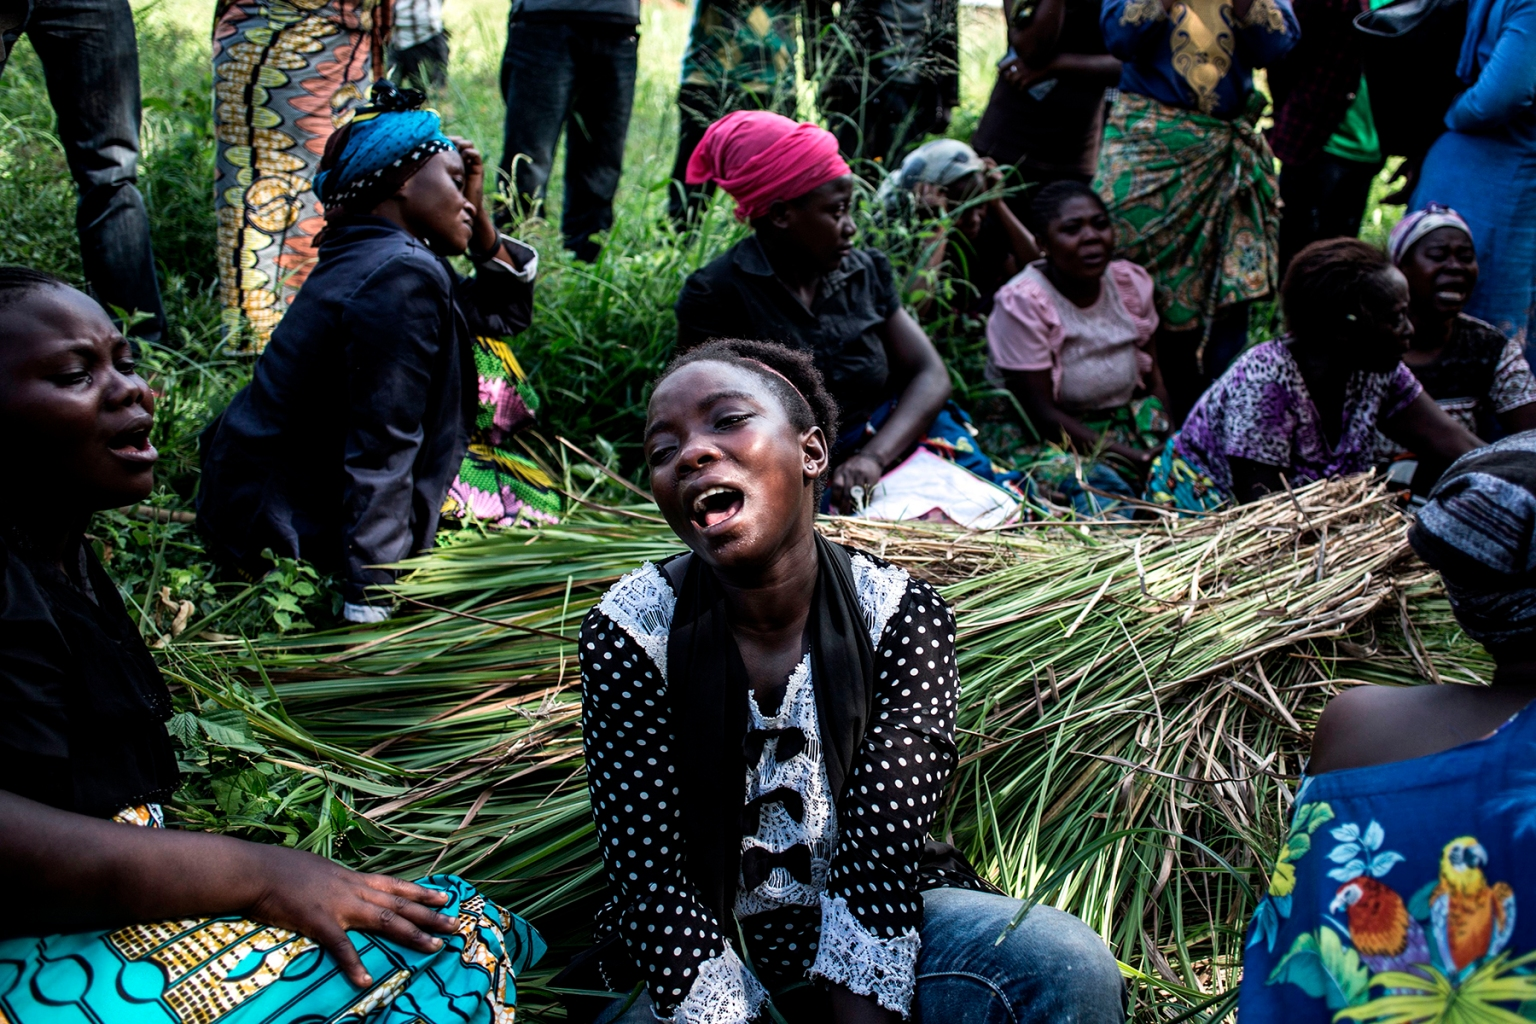 Family members of a woman killed in an attack blamed on the Ugandan Allied Democratic Forces rebel group mourn at her burial in Beni, Democratic Republic of Congo, on Nov. 12. Rebels were accused of killing six people, hacking one woman to death, and kidnapping five others—mostly children—in the Democratic Republic of Congo's restive east, officials said. JOHN WESSELS/AFP/Getty Images